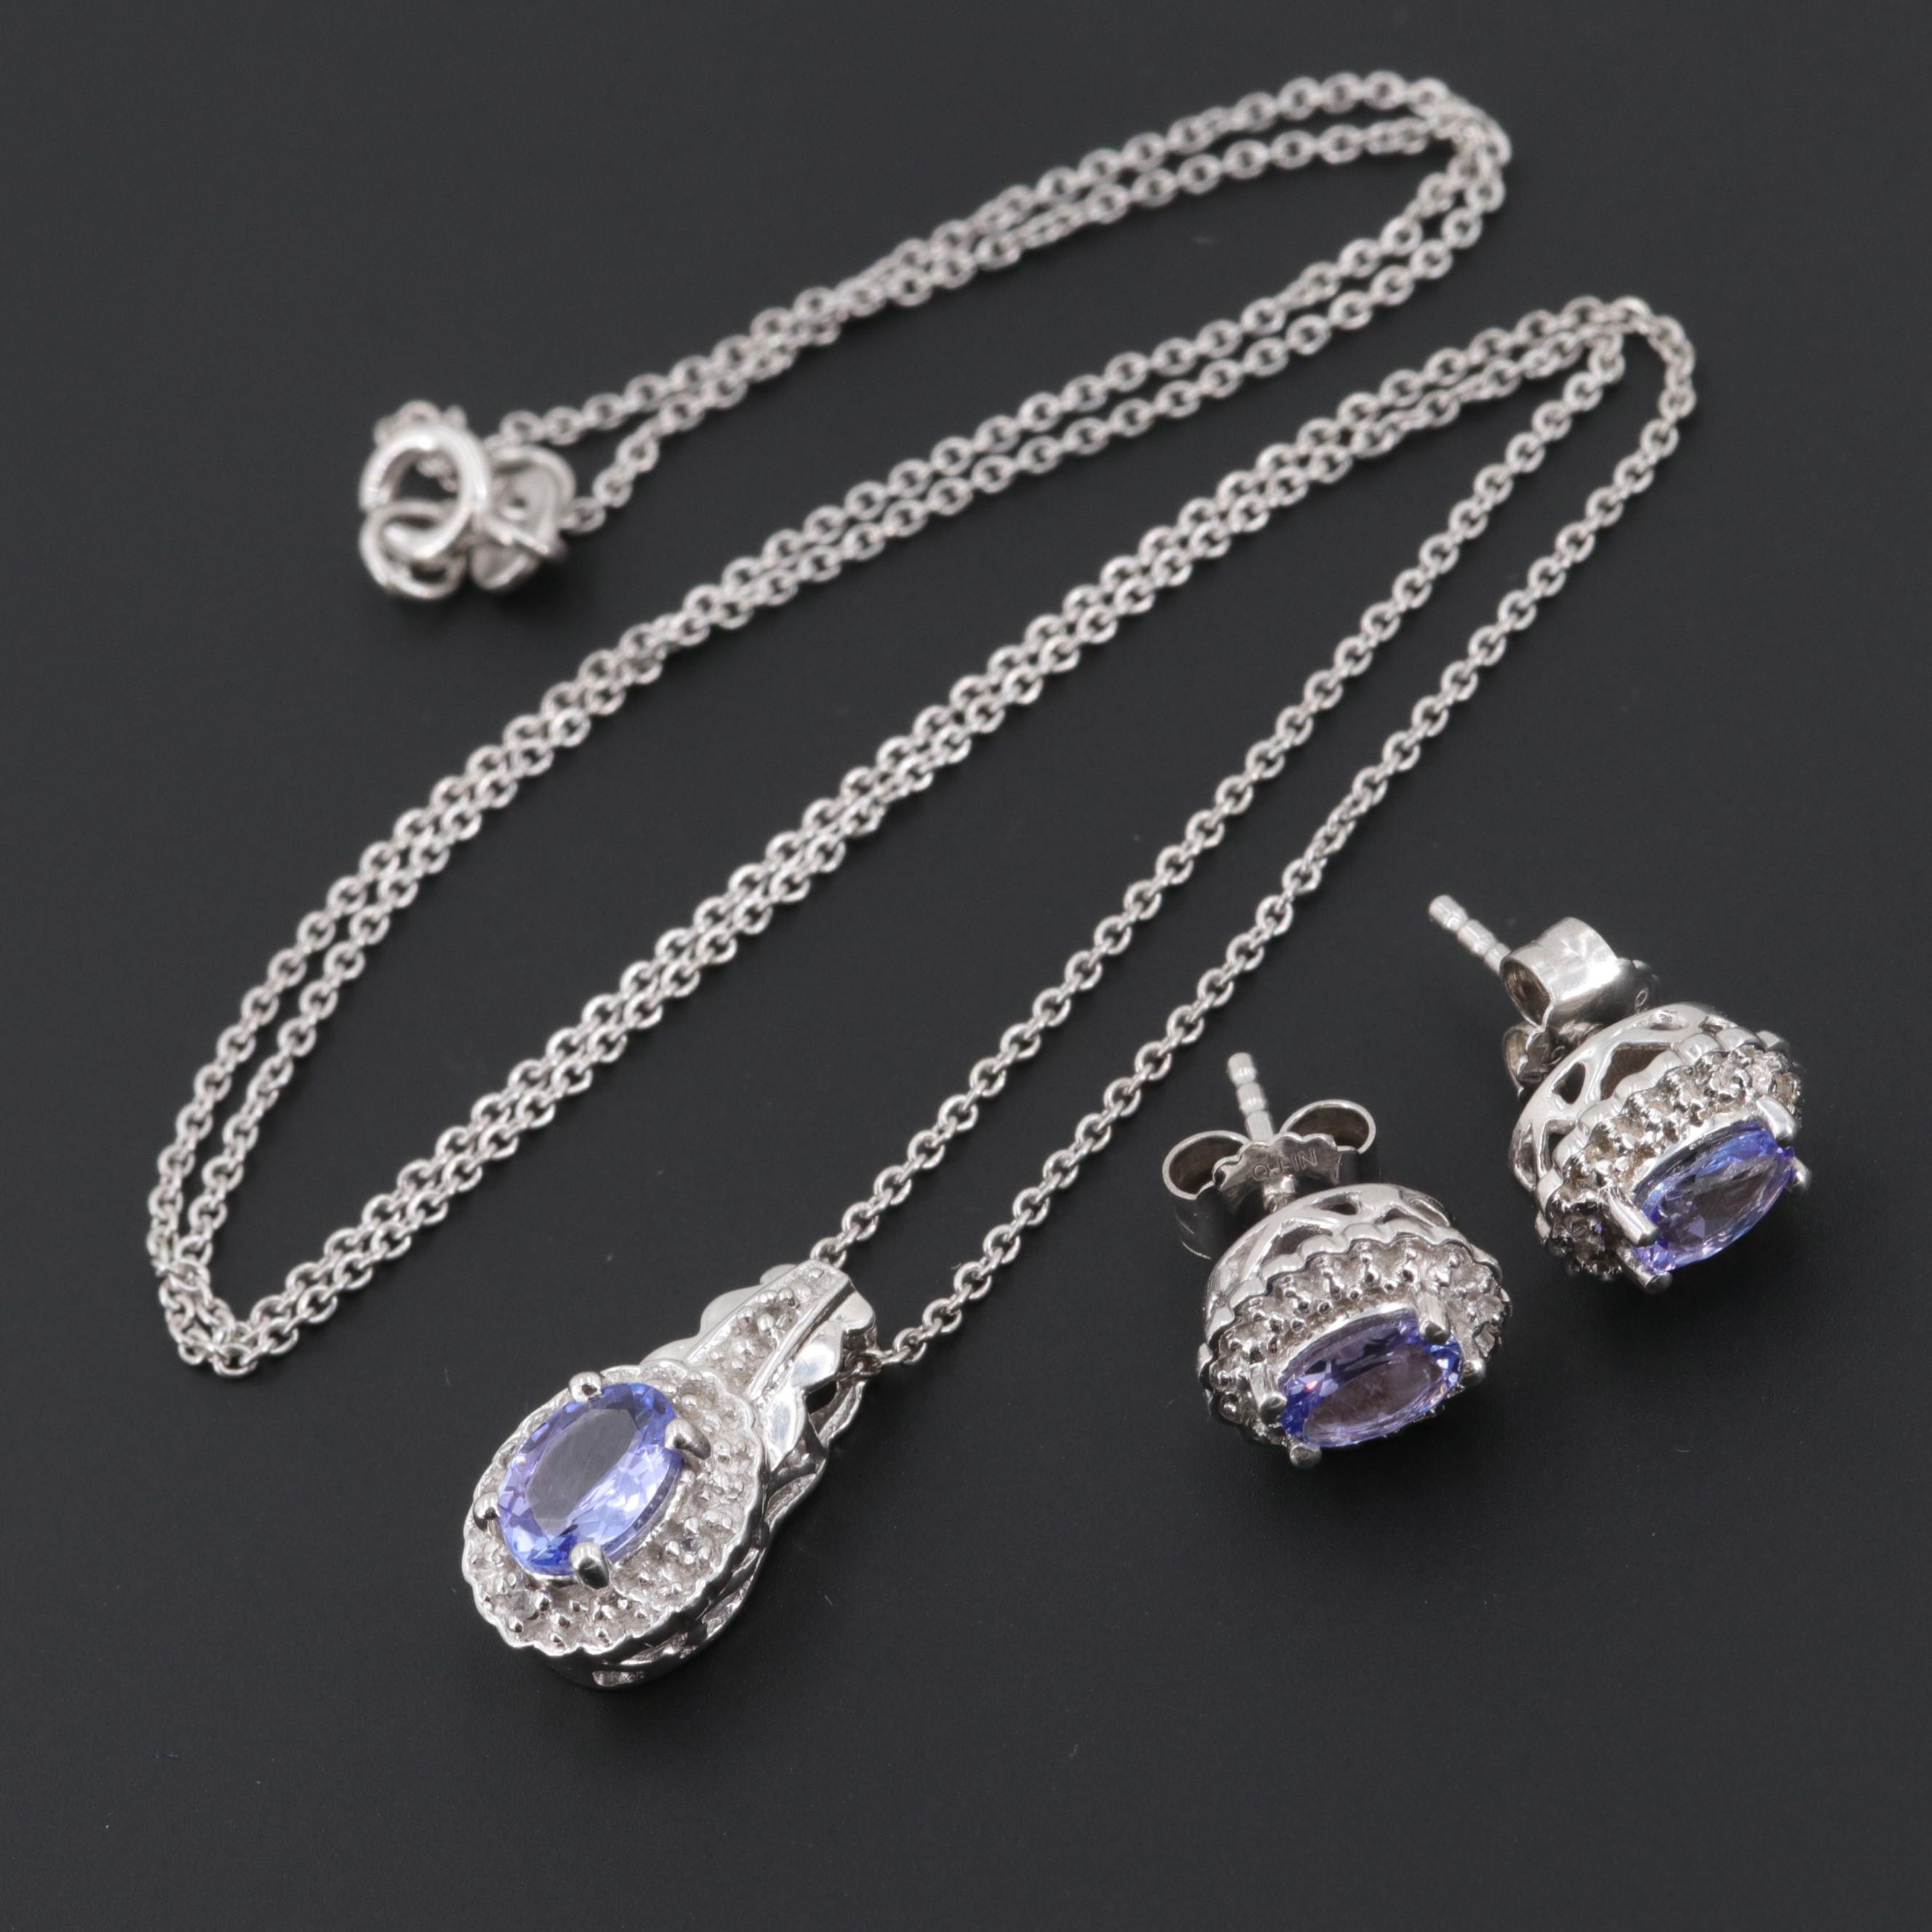 Sterling Silver Tanzanite and Topaz Necklace and Earrings